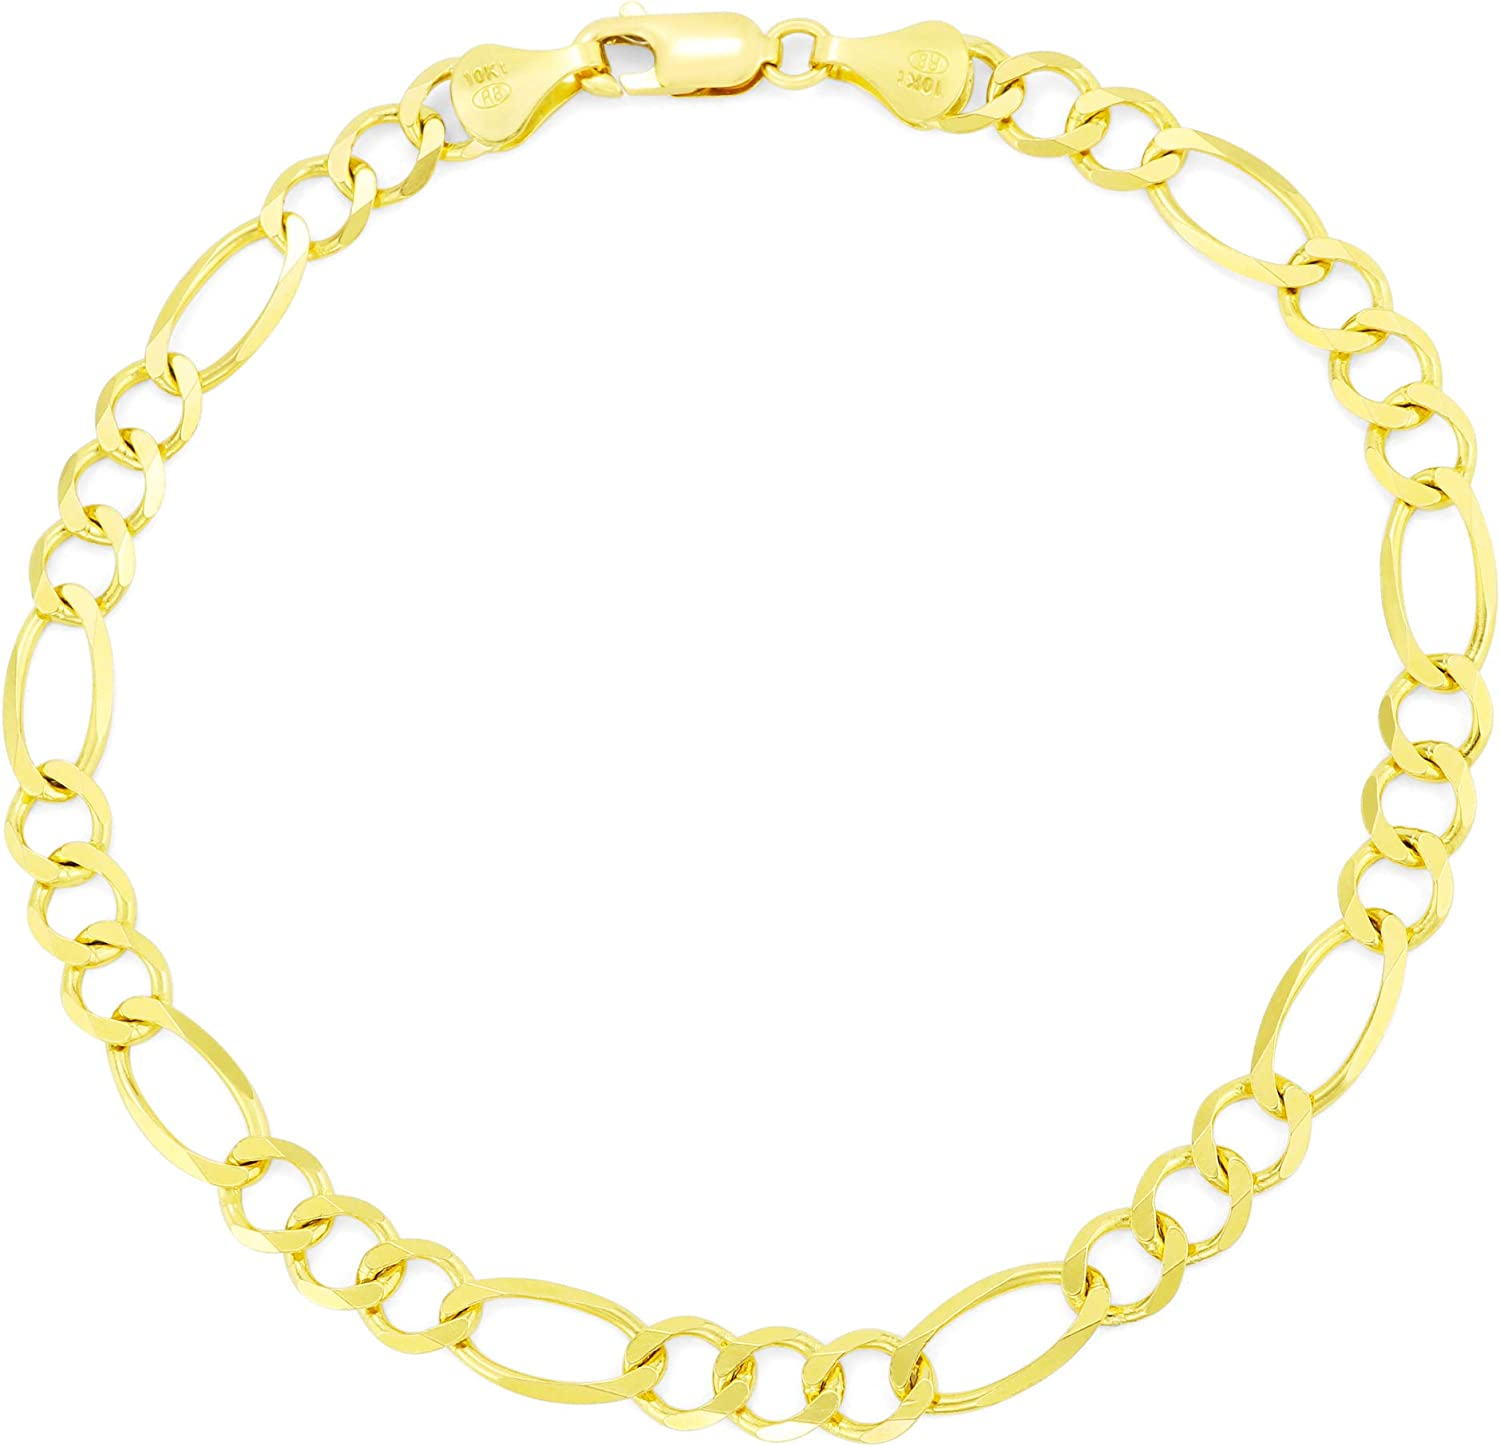 Nuragold 10k Yellow Gold 5.5mm Now free Indefinitely shipping Mens Bracelet Figaro Link Chain